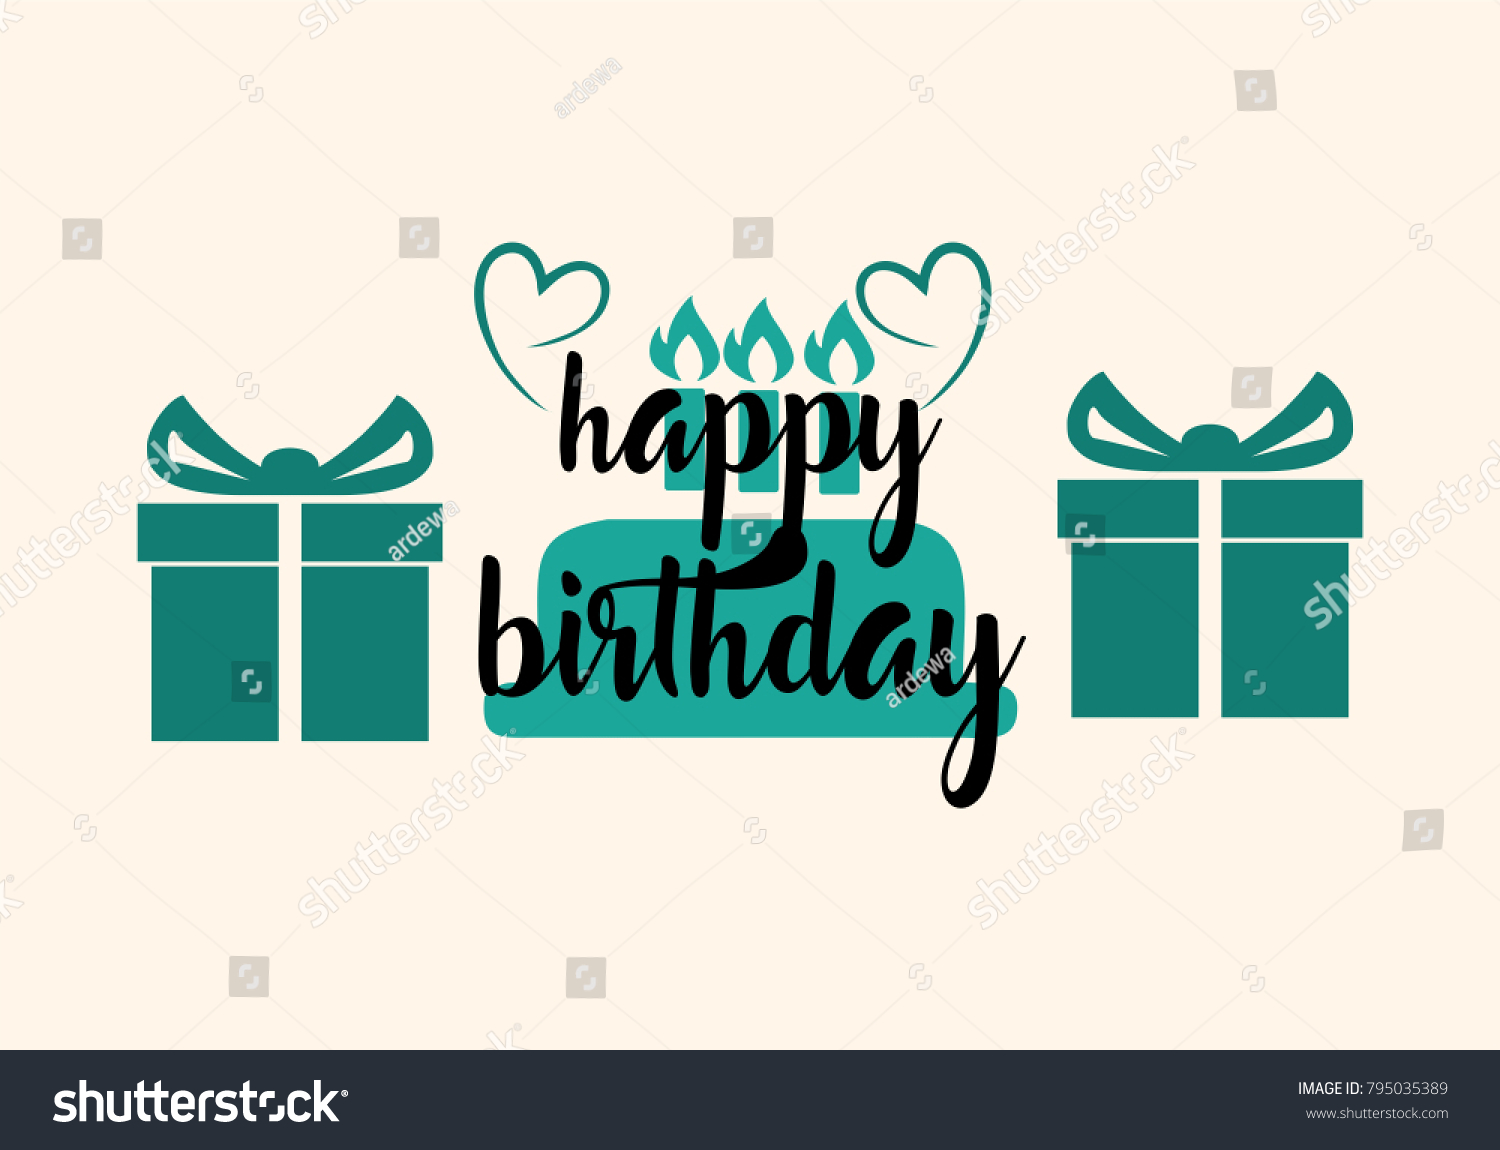 Happy Birthday Typographic Vector Design For Greeting Cards Print And Cloths Isolated Text